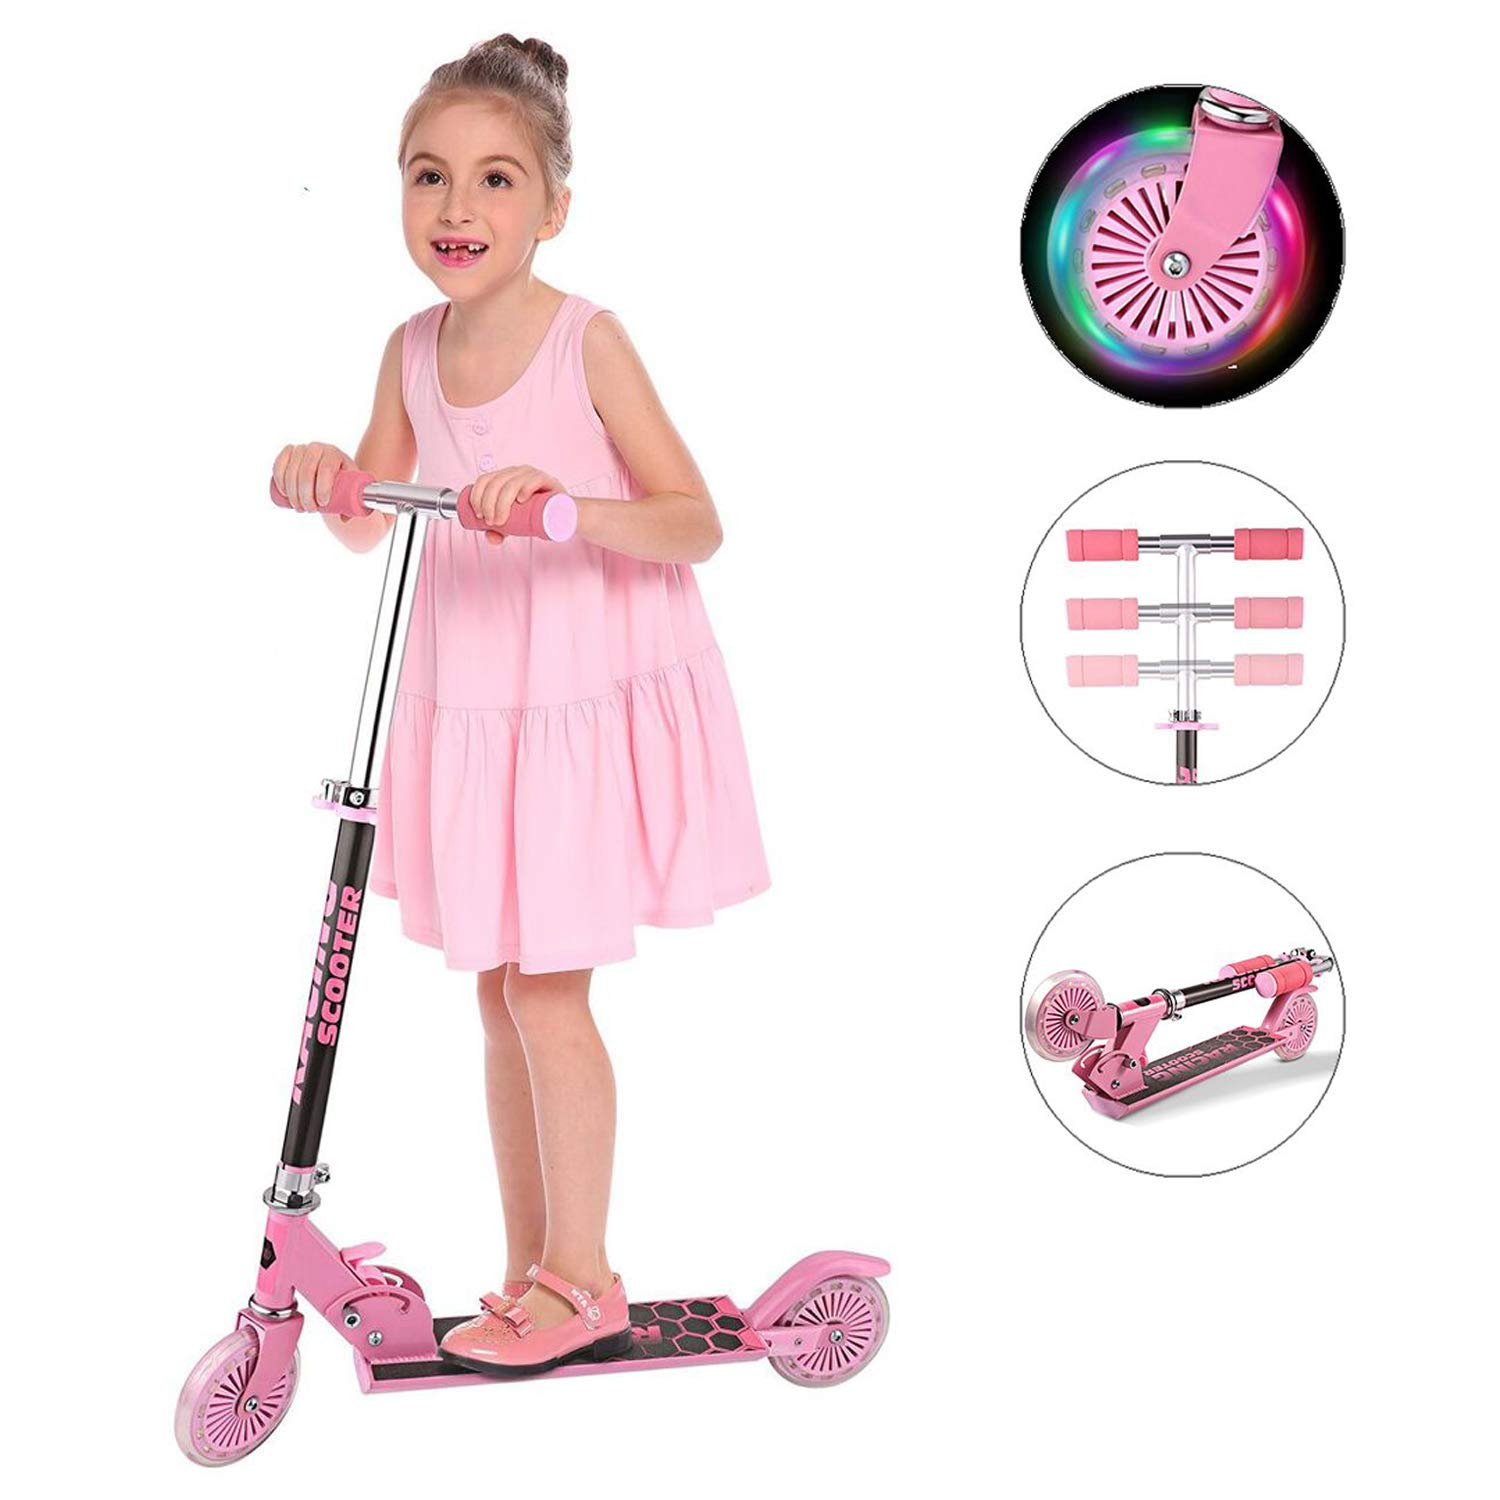 Yiilove Aluminum Scooter Foldable Kick Scooter 2 Wheel Adjustable Height Mini Kick Scooter with LED Light Up Wheels for Boys and Girls Kids Toddler (Pink)